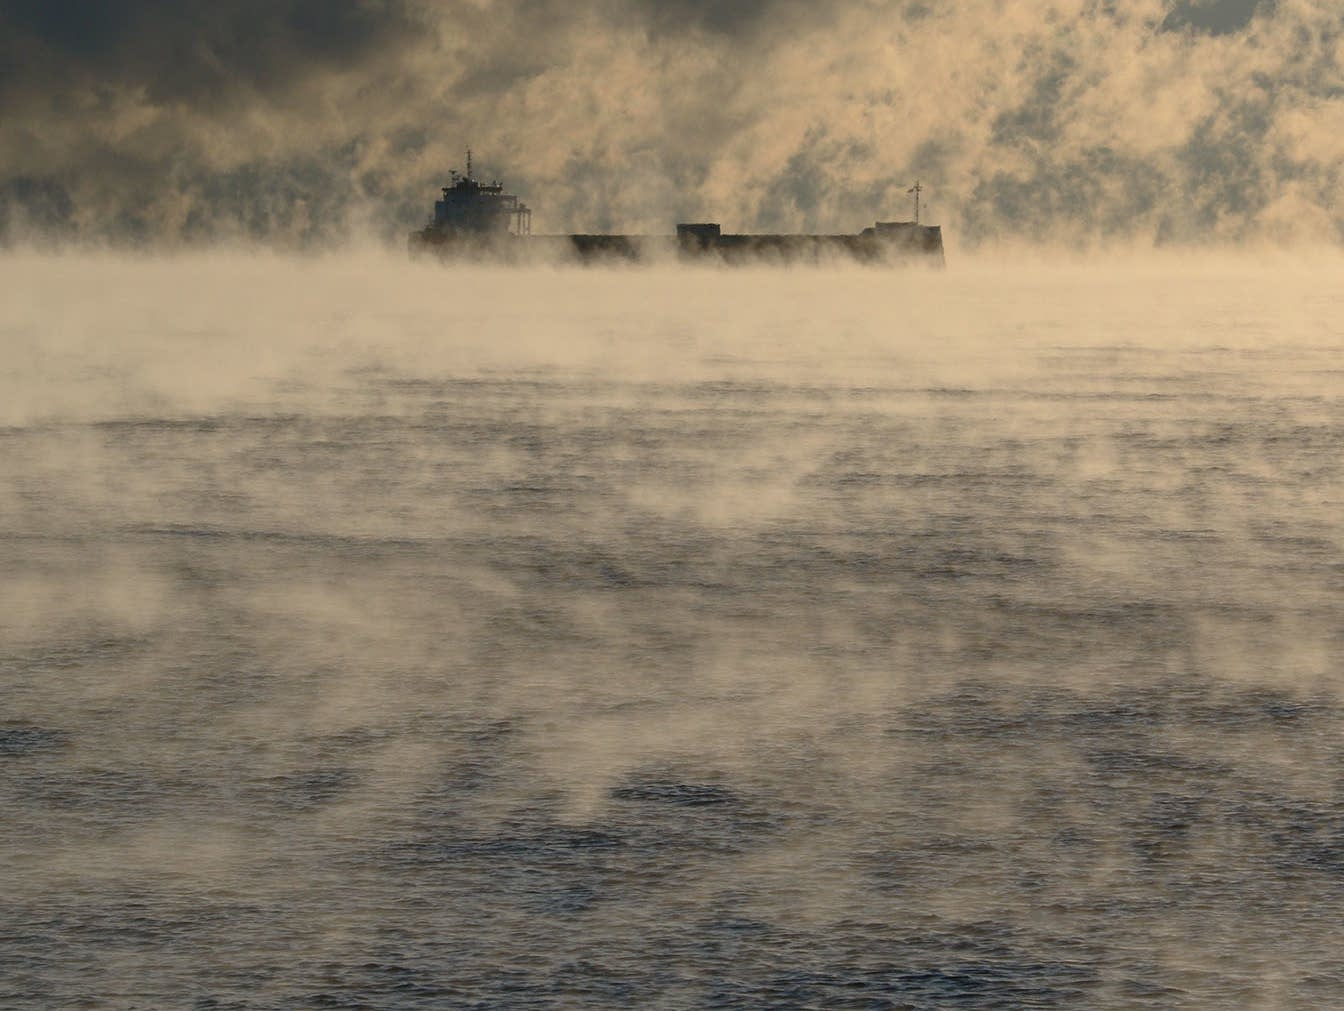 The saltie Reestborg is anchored on Lake Superior amid sea smoke.